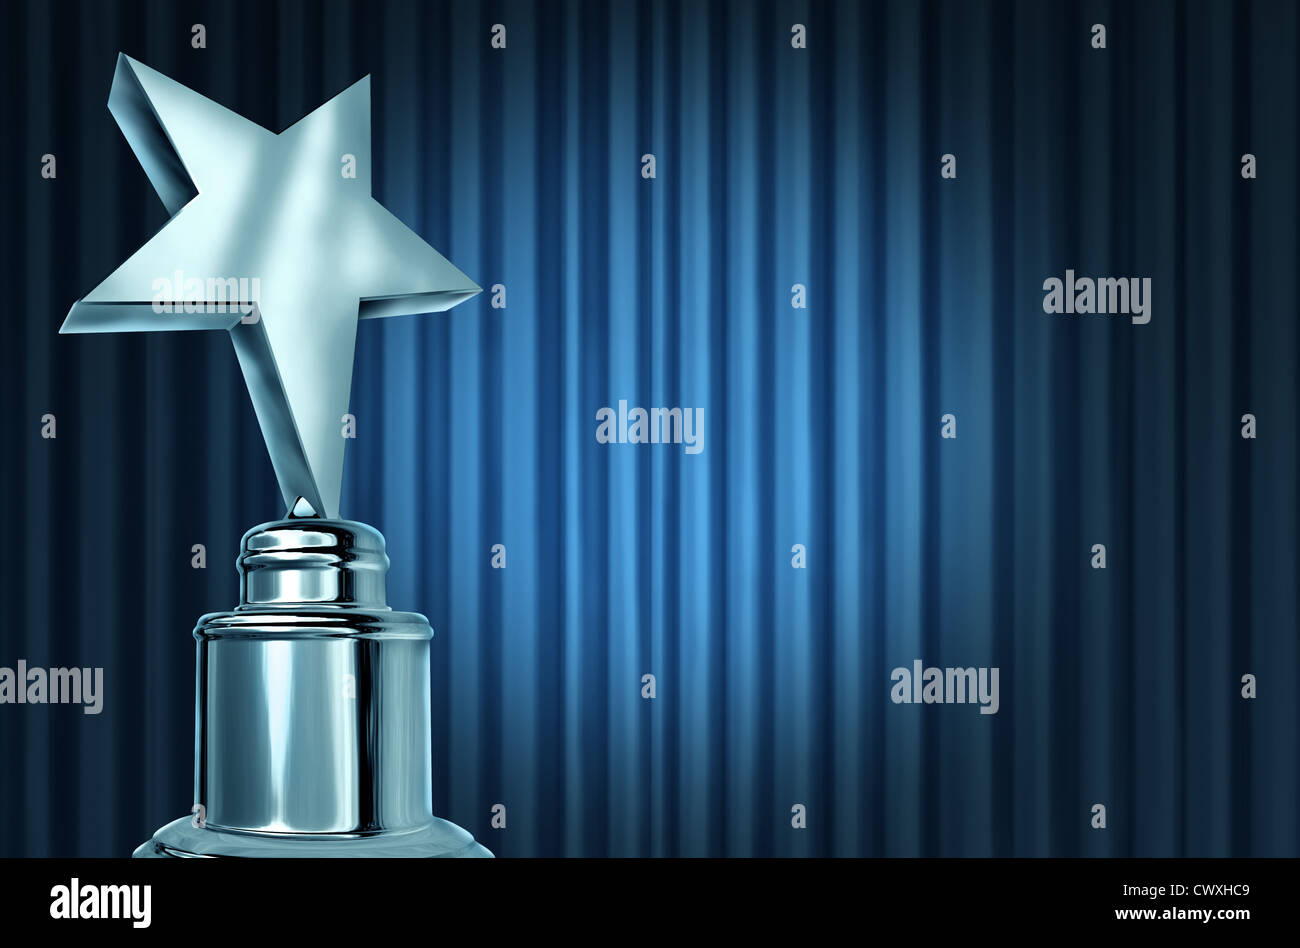 Silver Star Award On Blue Curtains Or Velvet Drapes With A Spot Light Representing An Achievement Trophy Prize Theater Stage During Awards Ceremony